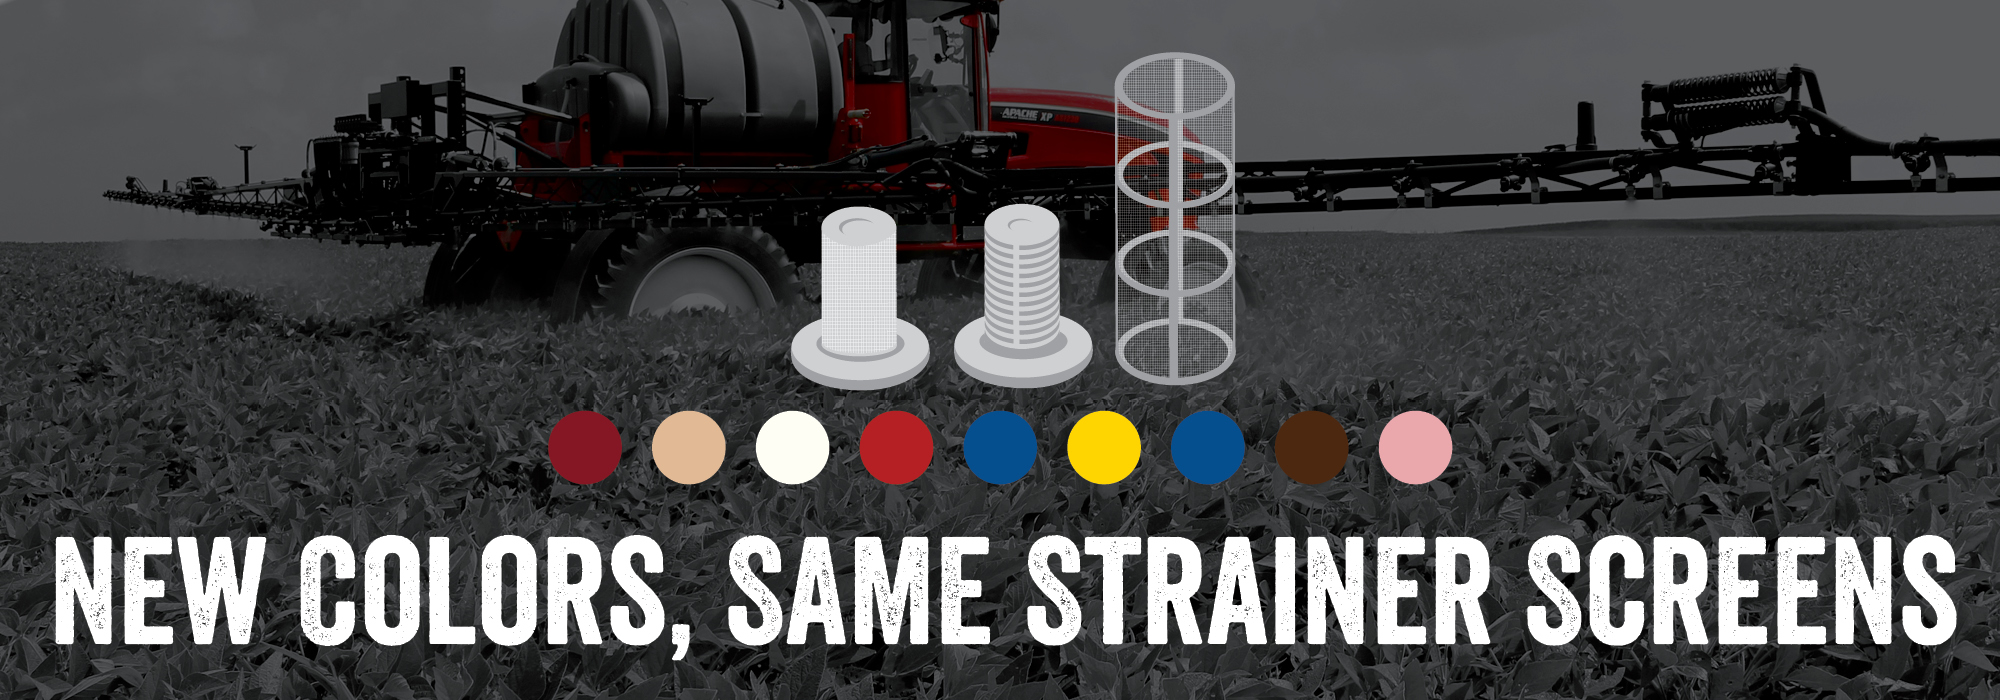 Apache Sprayers Straining Screens Colors Header Image